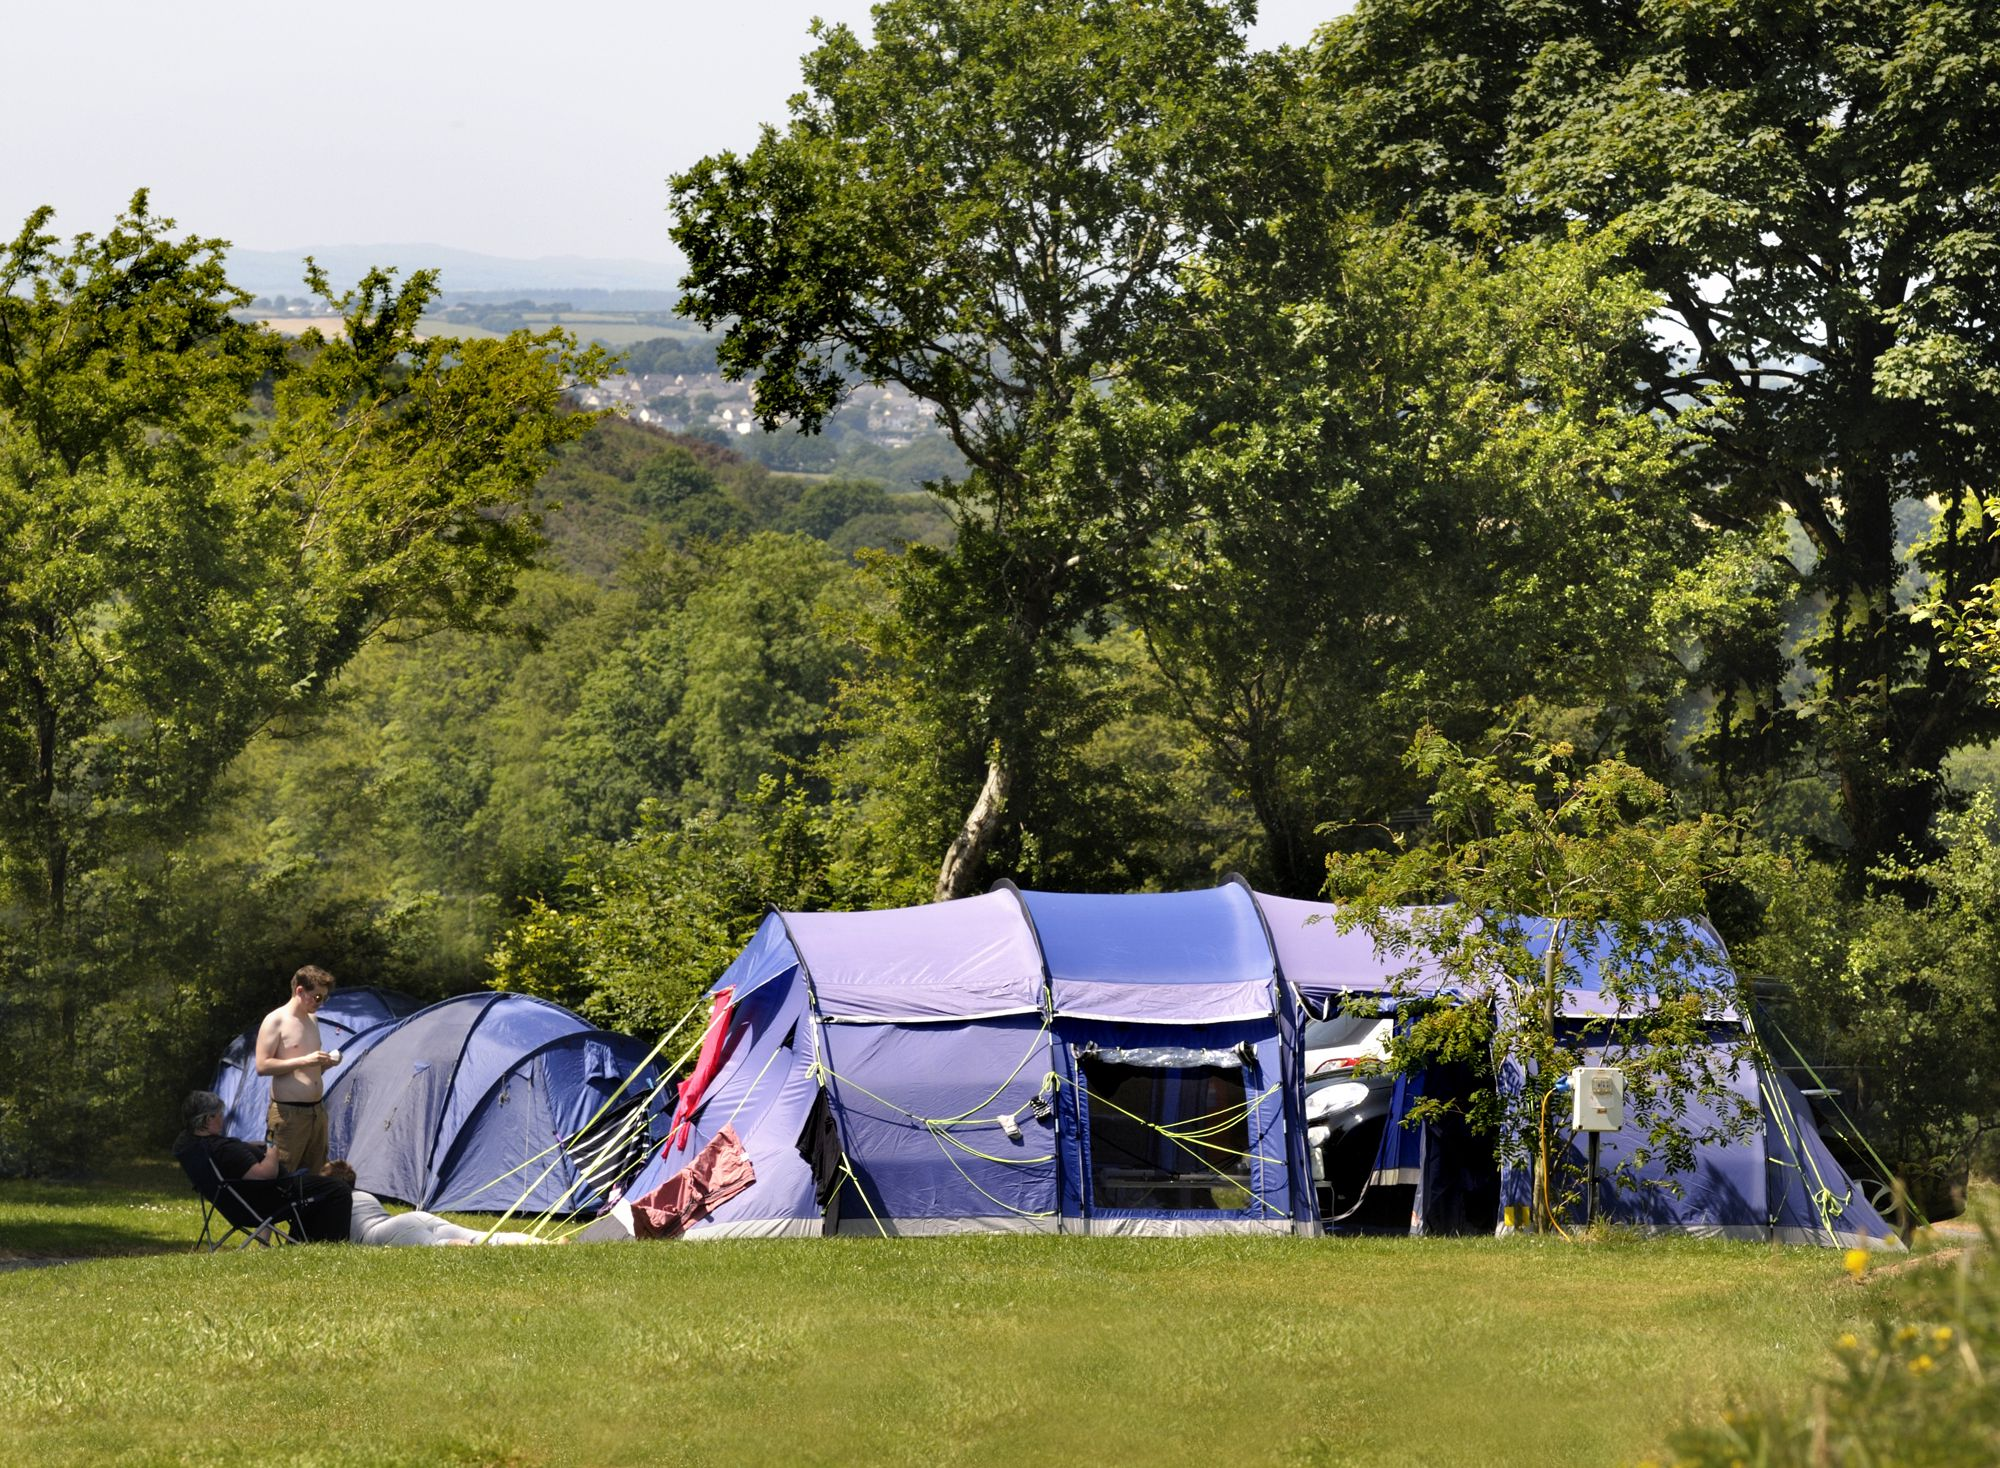 There's a peaceful atmosphere here, with pitches offering wonderful views across the fascinating landscape of Dartmoor.